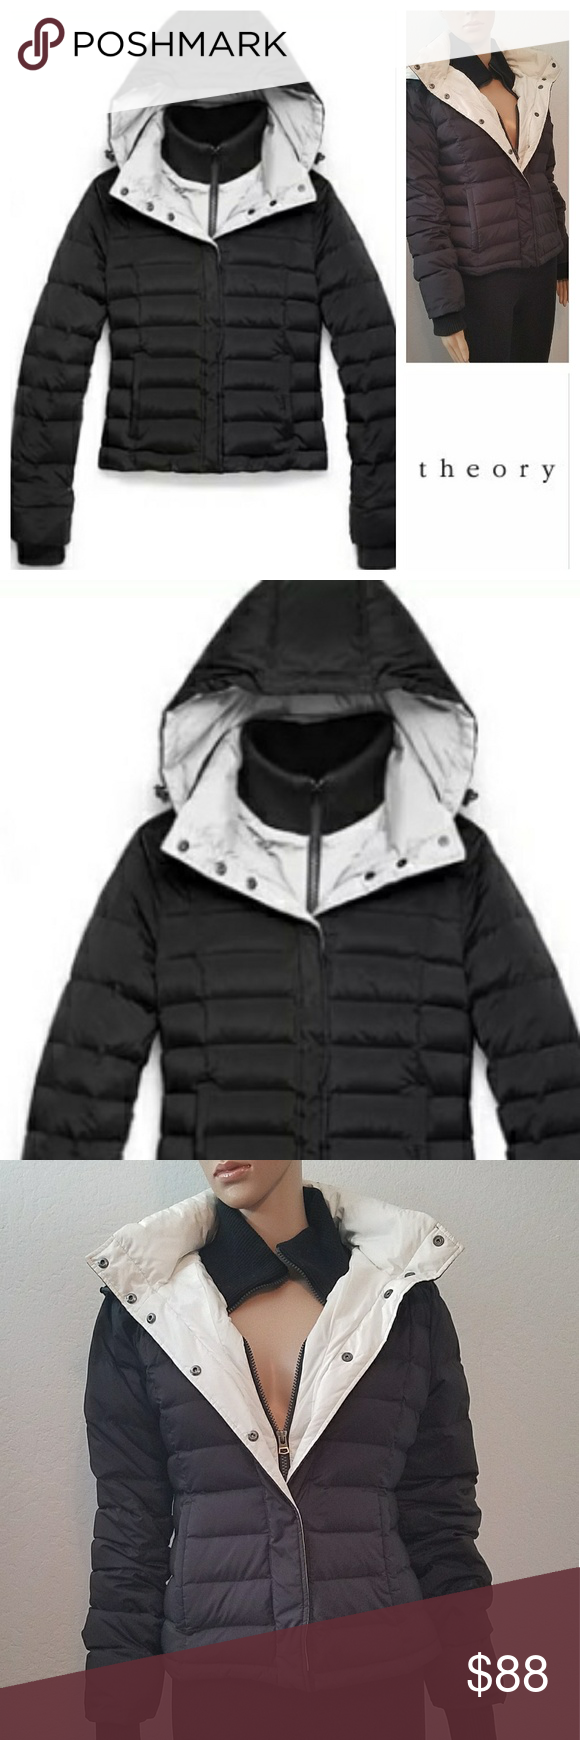 Limited Edition THEORY UNIQLO Down Puffer Jacket Fashion